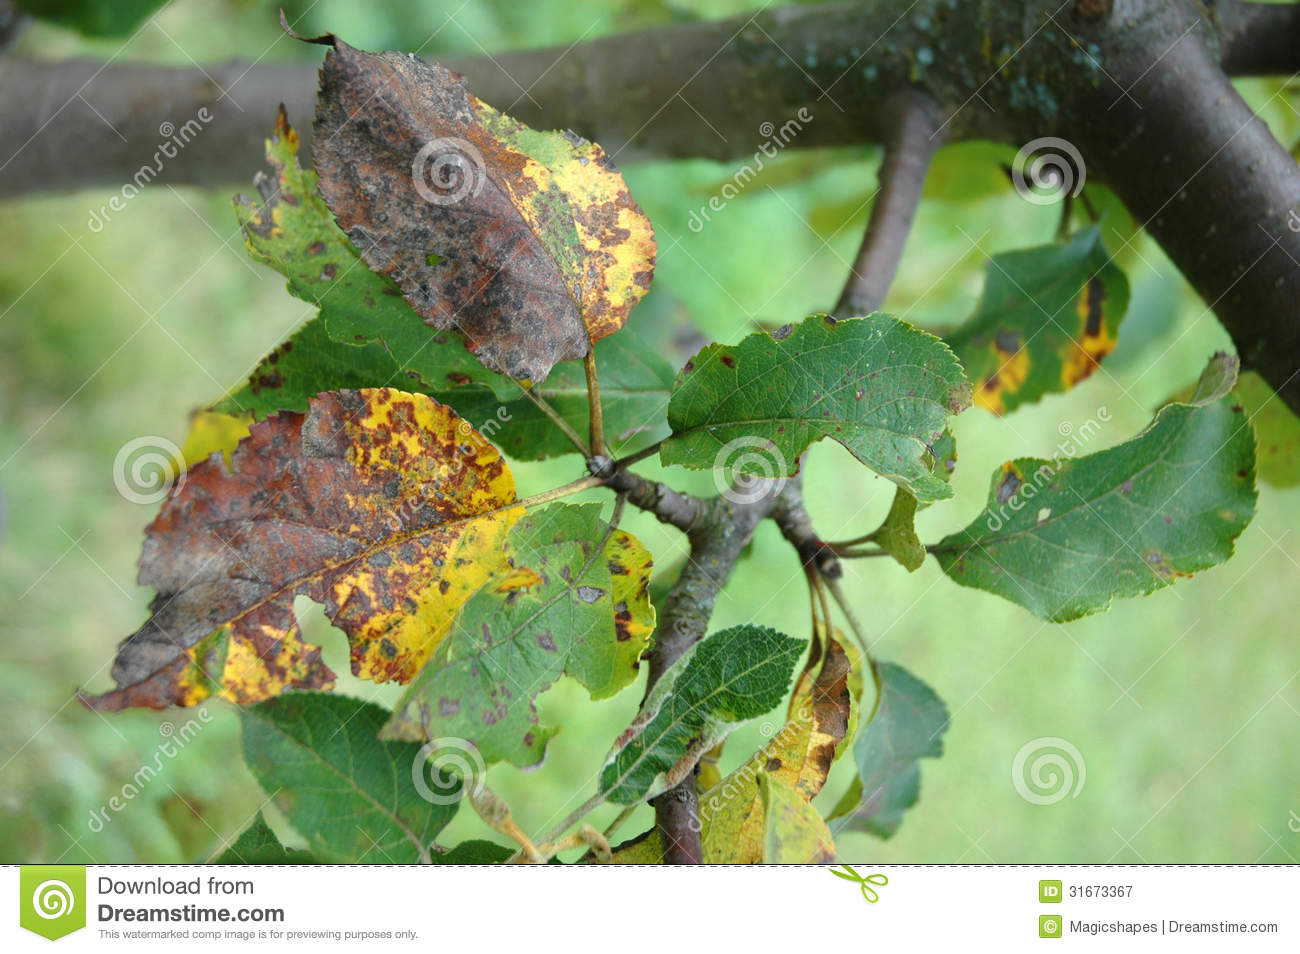 Plum Rust Disease On Leaves Stock Image - Image: 31673367